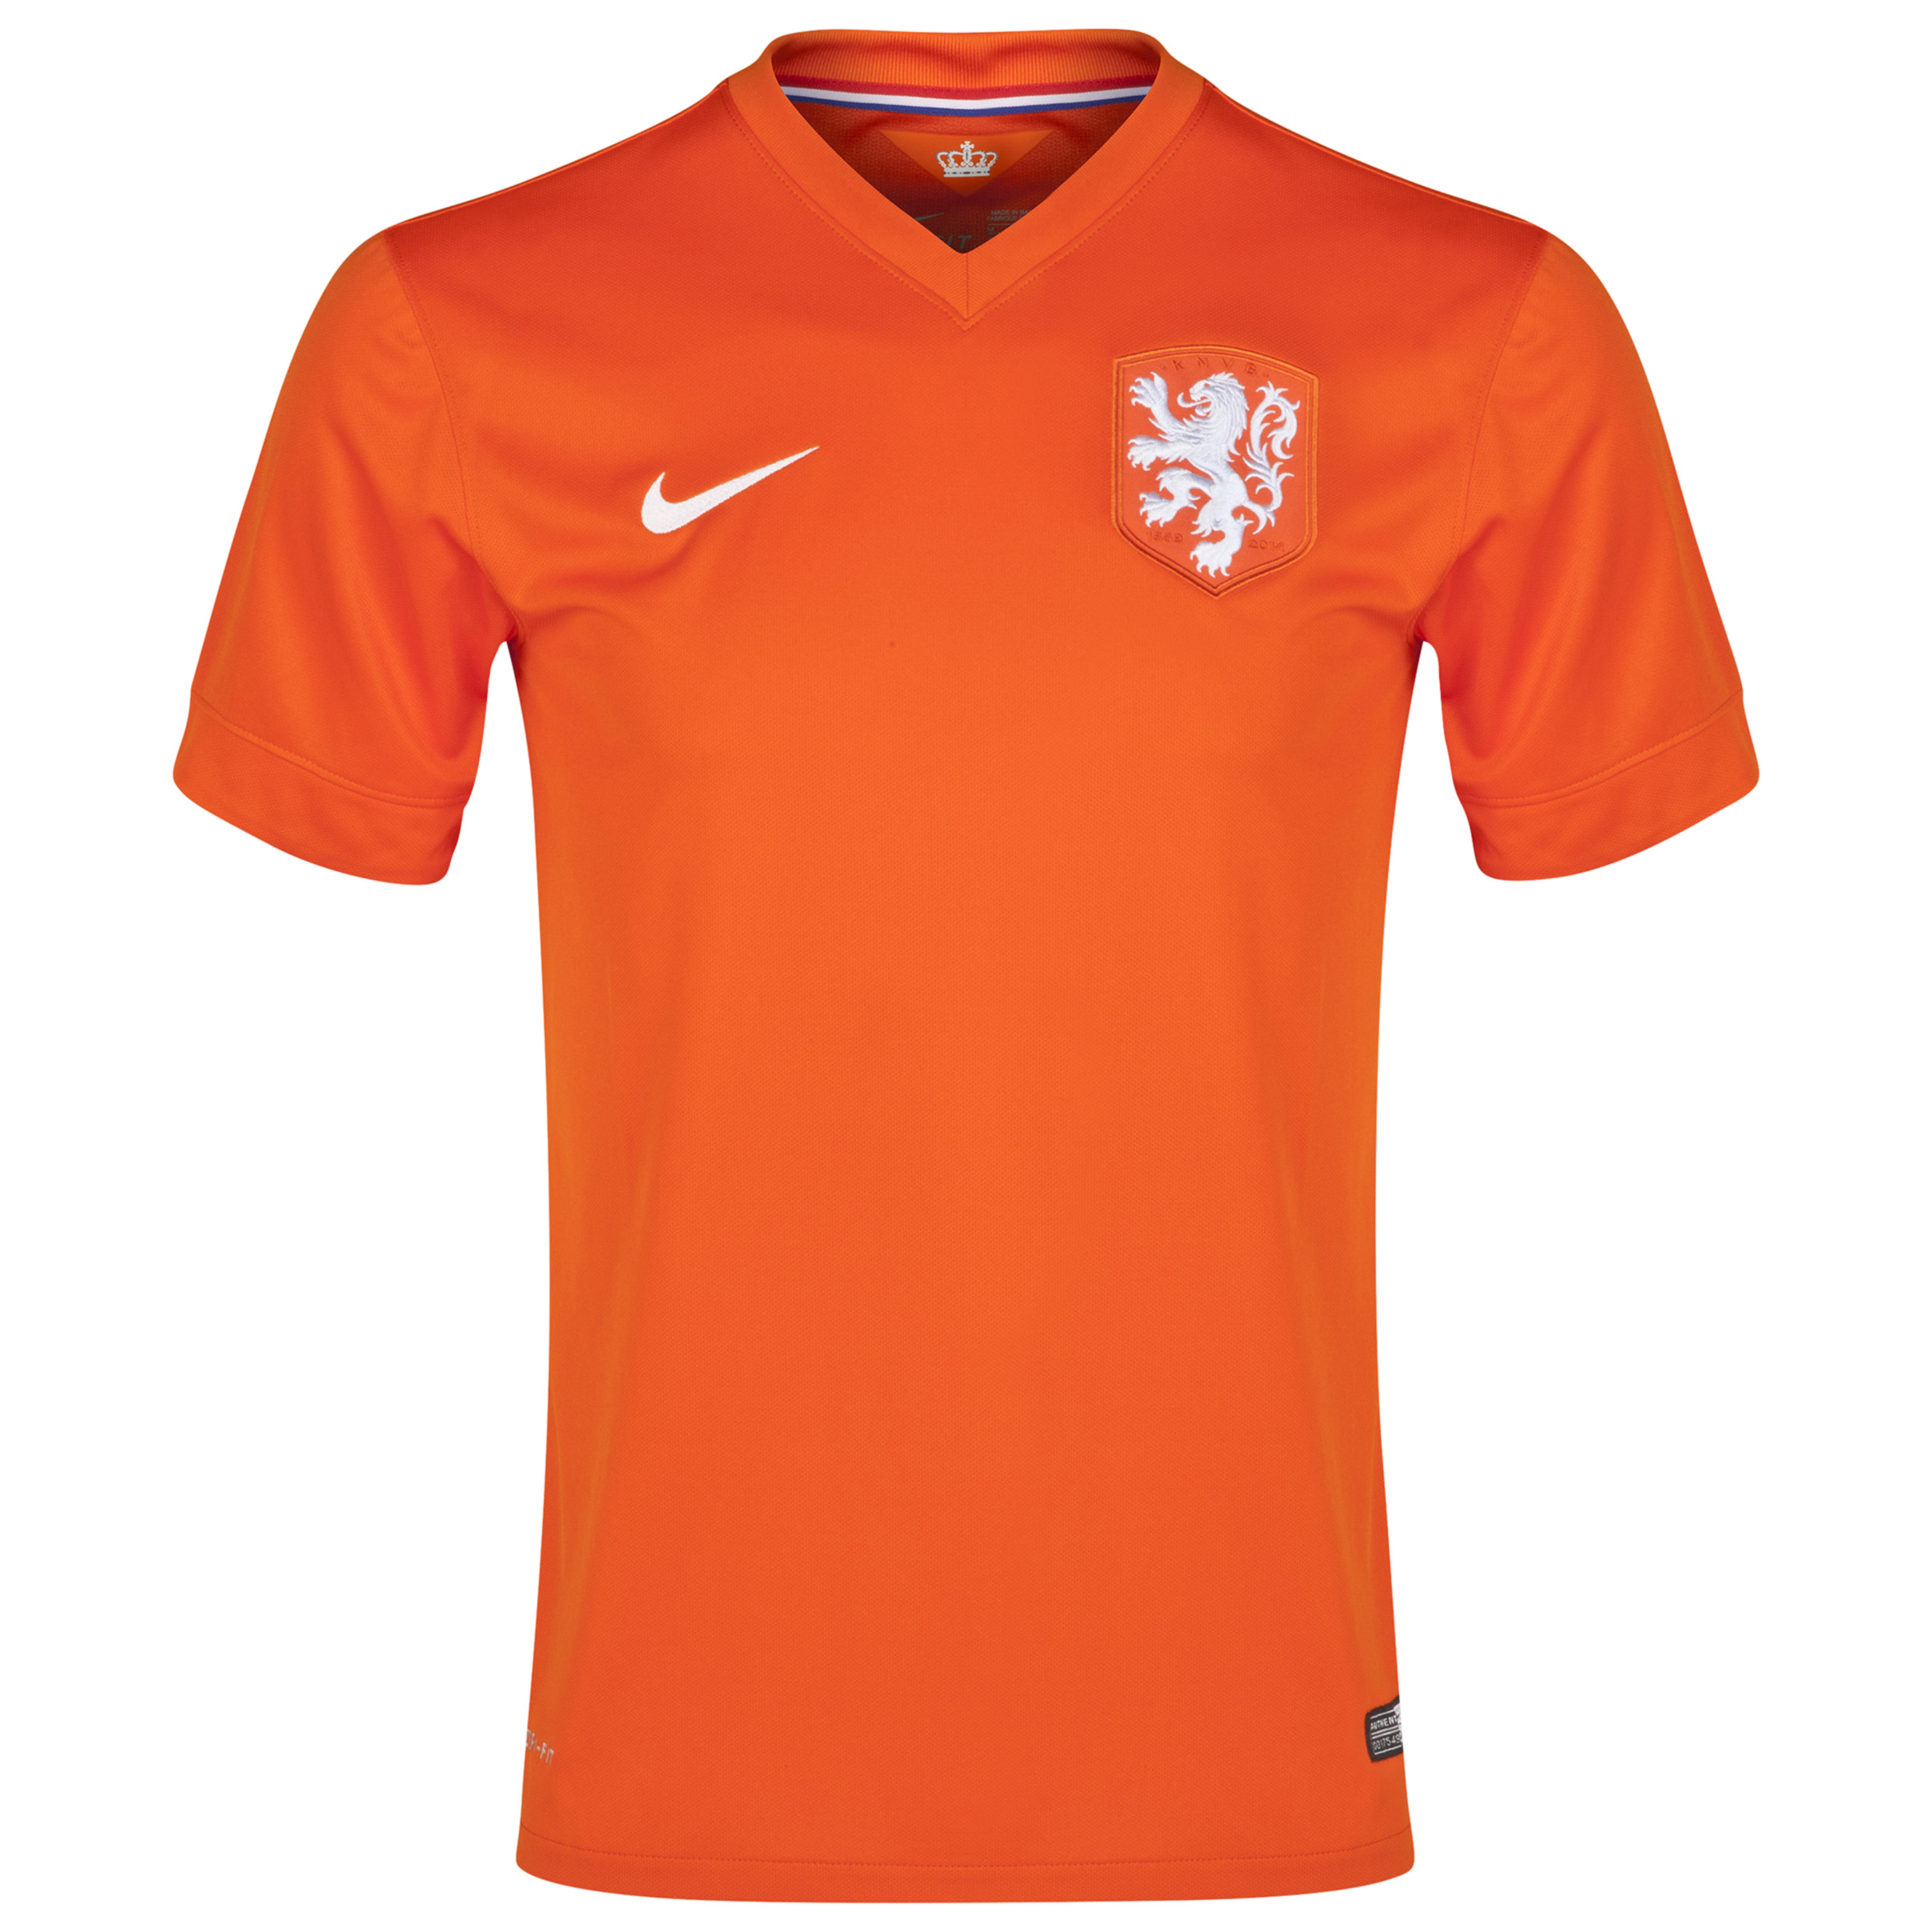 Netherlands Home Shirt 2014/15 - Kids Orange